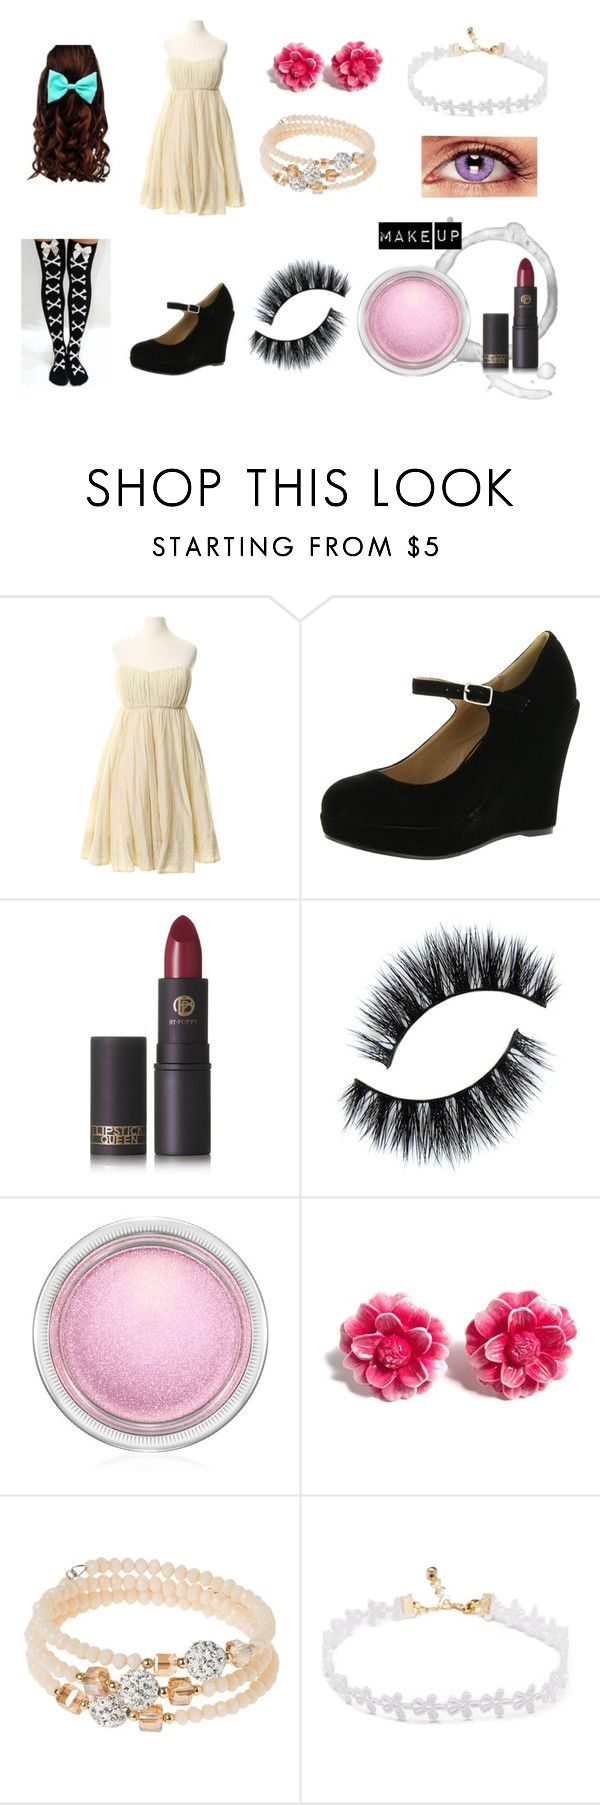 """Don't Hug Me I'm Scared OC"" by awkward-goth ❤ liked on Polyvore featuring Twenty8Twelve, Bonnibel, Lipstick Queen, MAC Cosmetics, Tarina Tarantino and sweet deluxe"